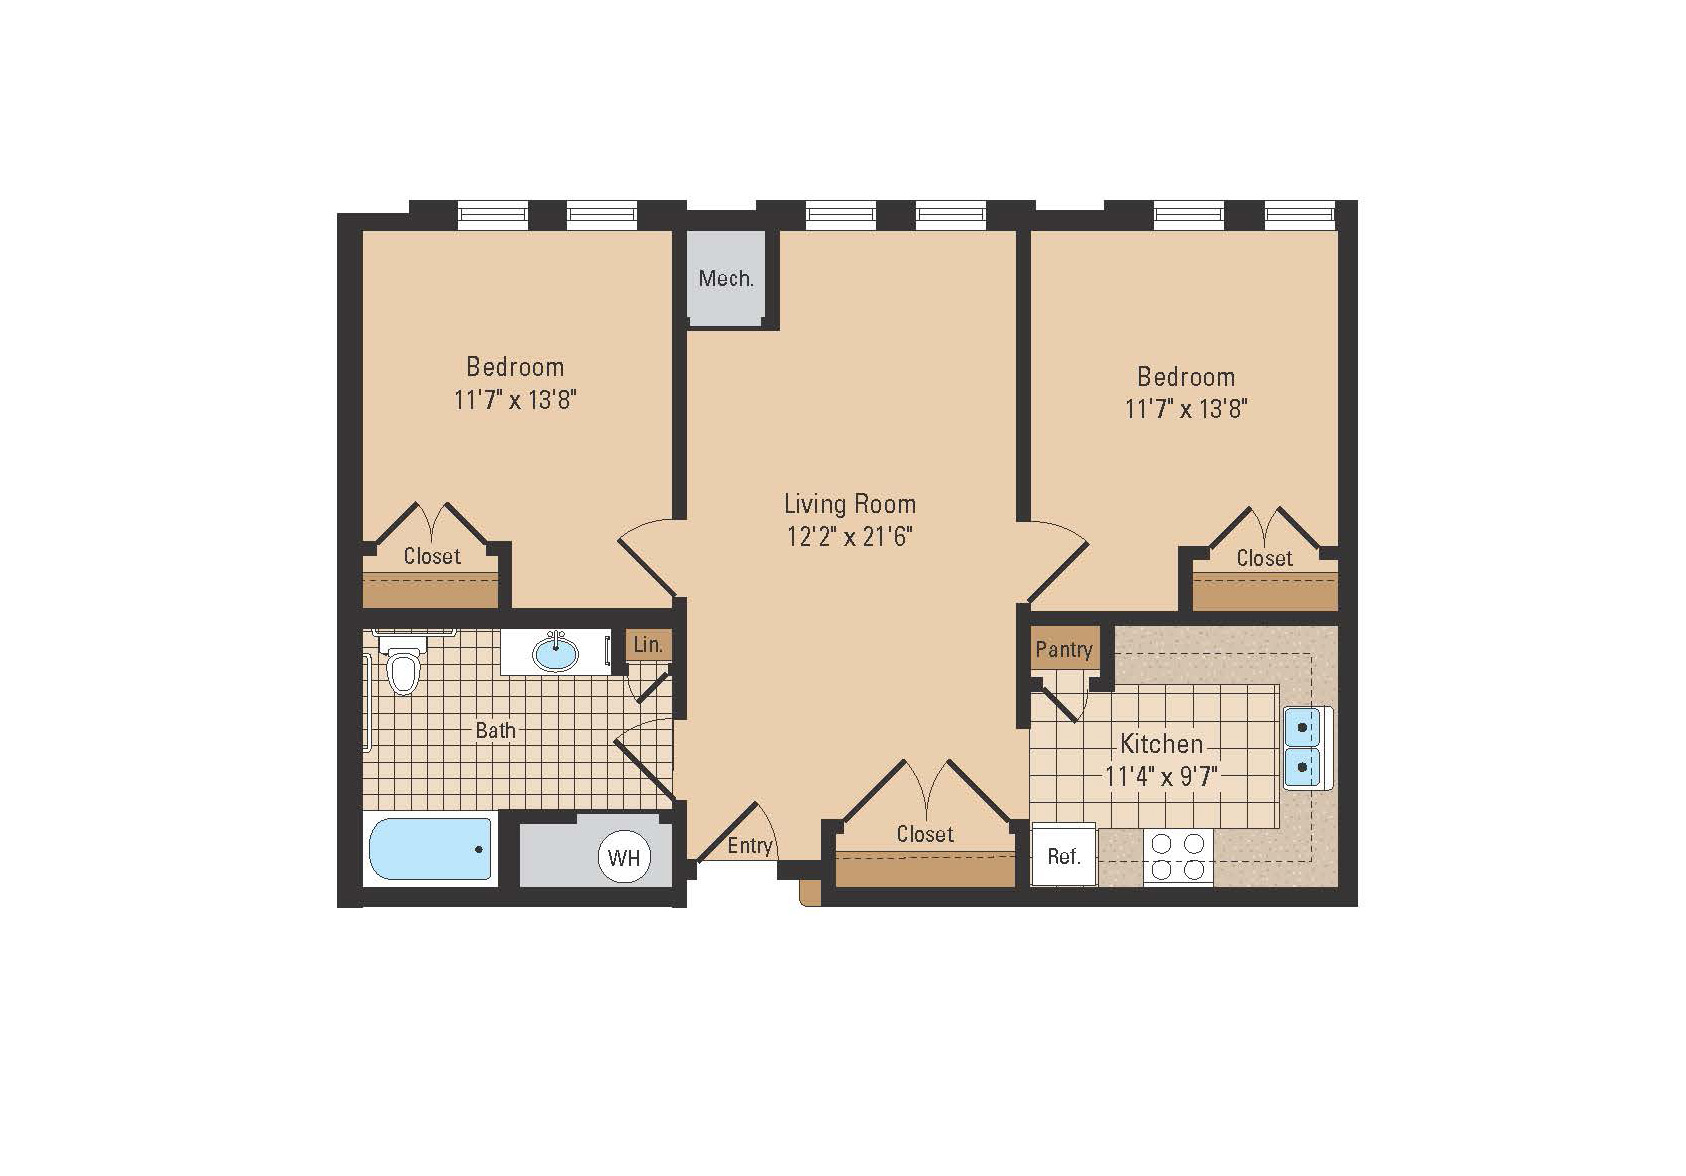 Avenue apartments the 500 square foot apartment floor plans